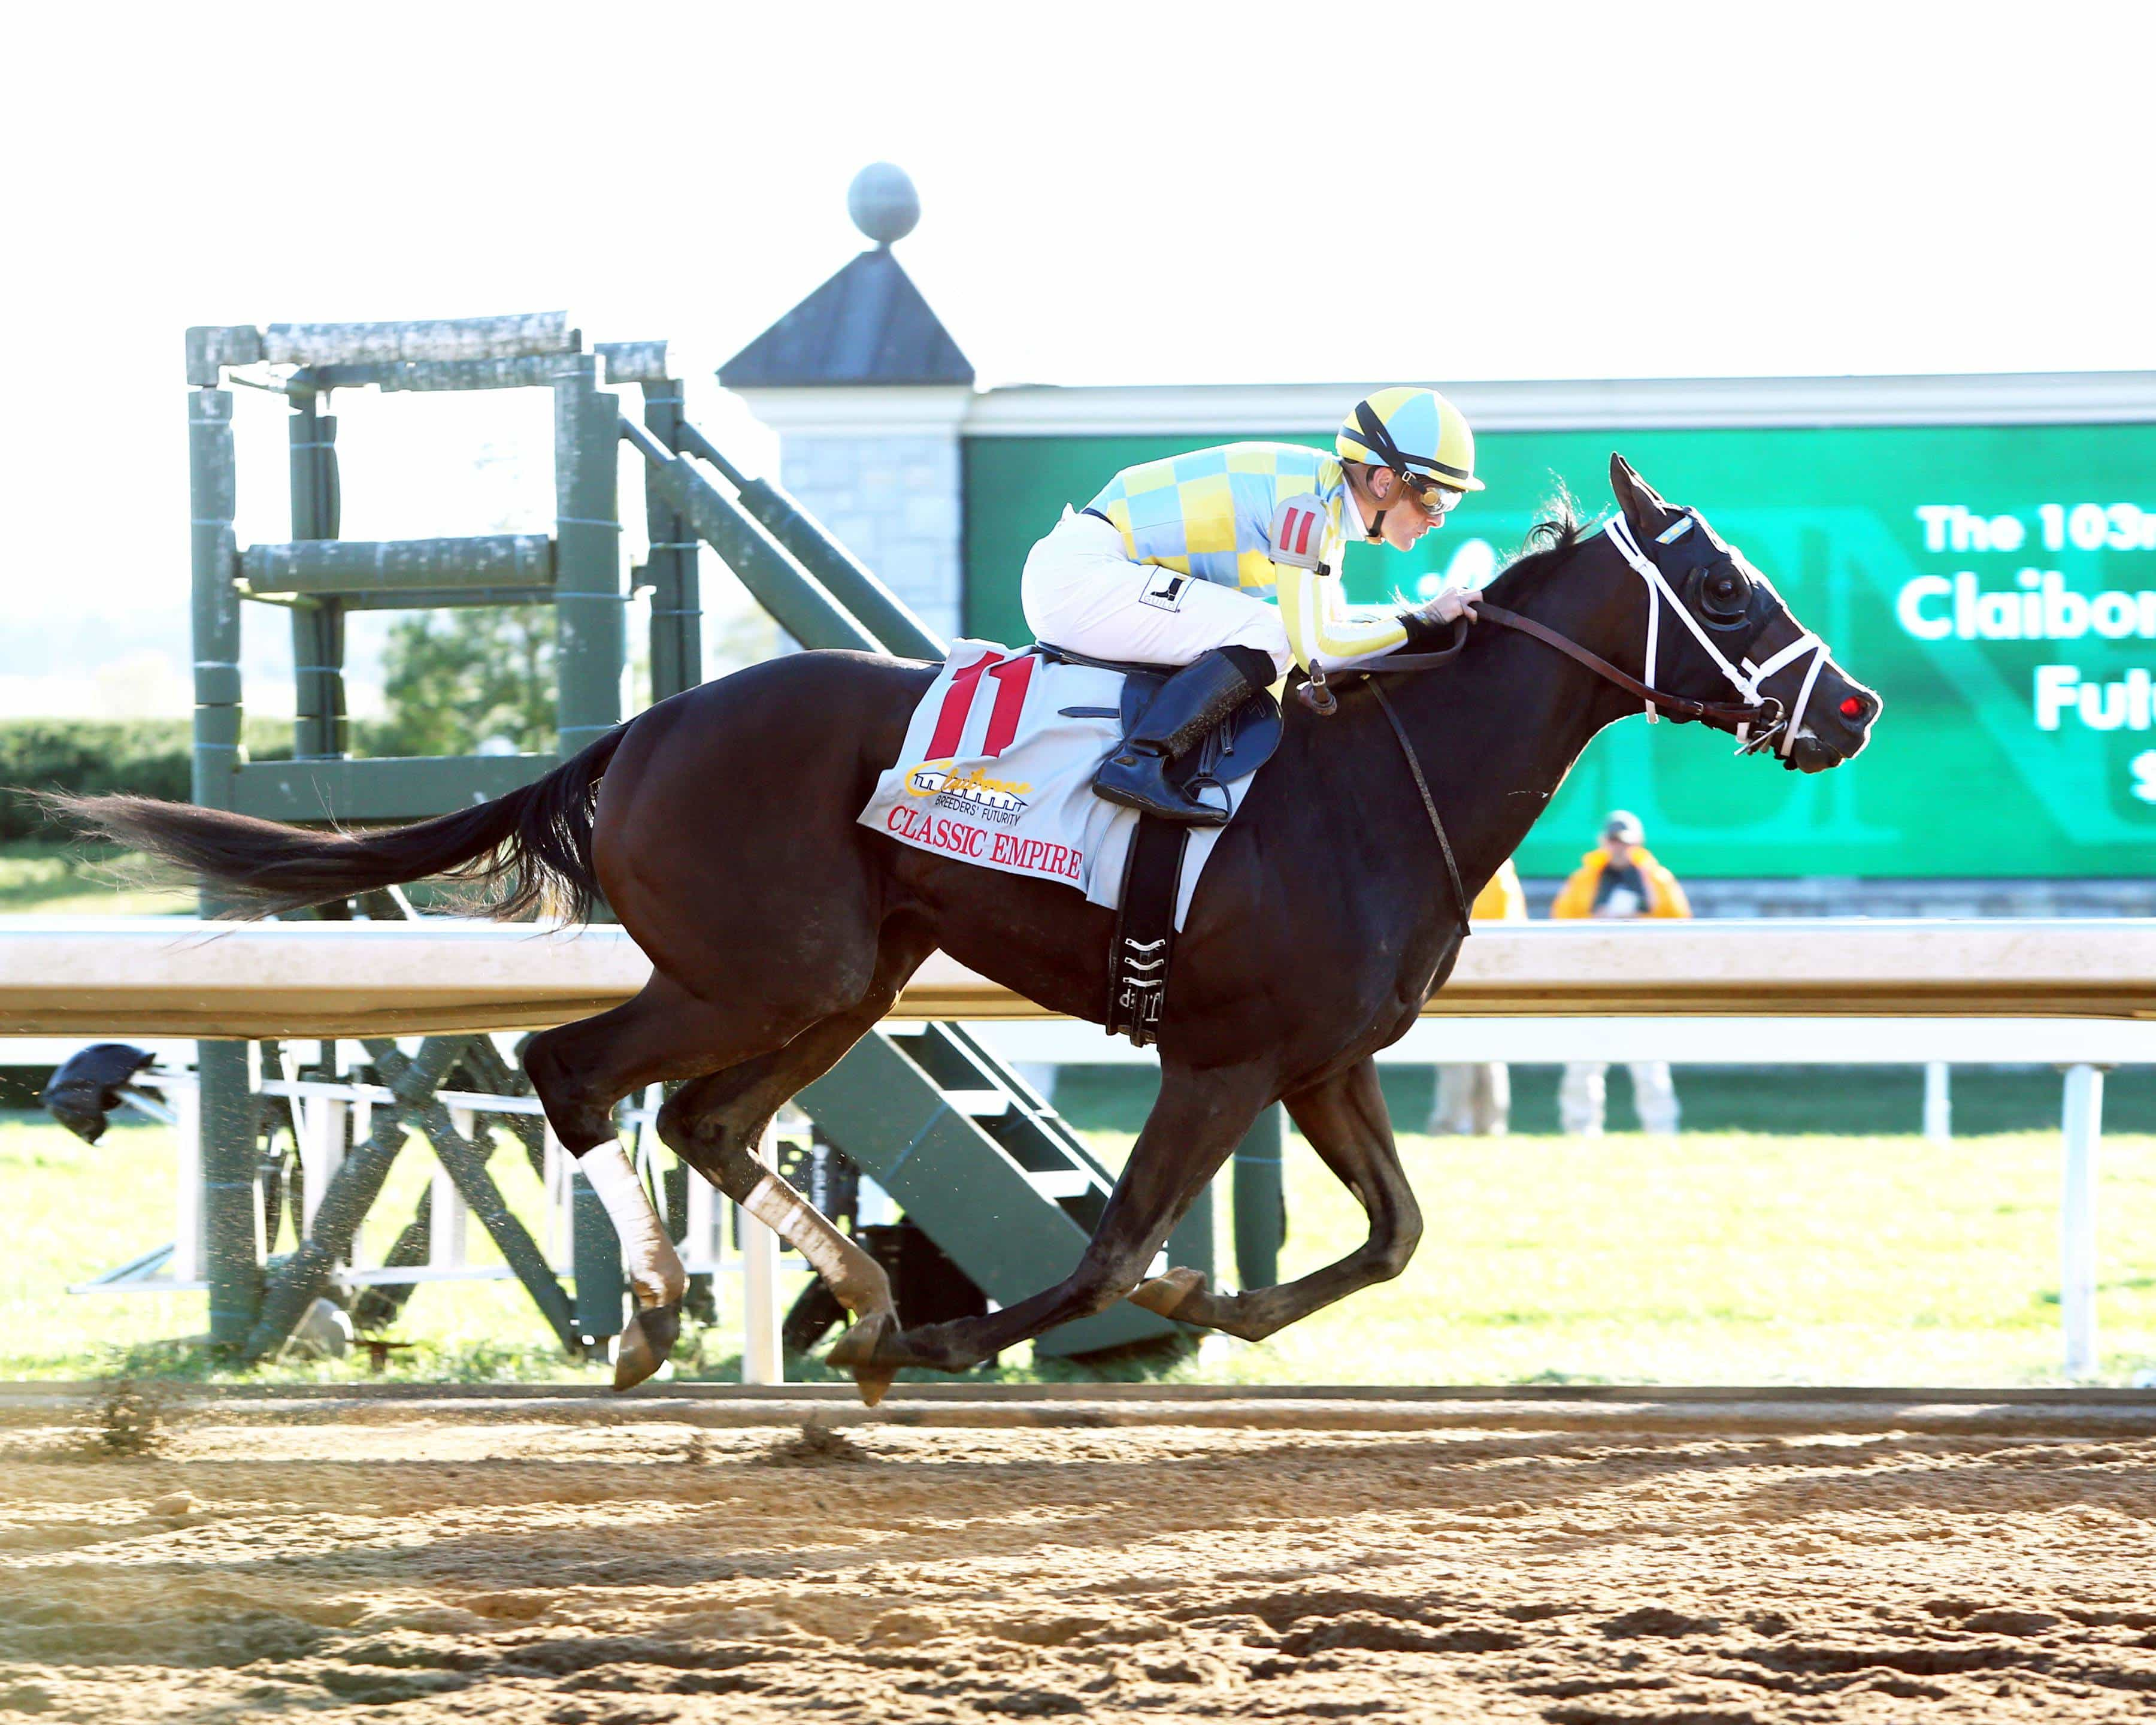 CLASSIC EMPIRE The Claiborne Breeders' Futurity Gr I - 103rd Running Keeneland Race Course Lexington, Kentucky October 8, 2016 Race #08 Purse $500,000 1-1/16 Miles 1:43.41 John Oxley, Owner Mark Casse, Trainer Julien Leparoux, Jockey Looking at Lee (2nd) Wild Shot (3rd) $5.20 $4.20 $3.40 Order of Finish - 10, 2, 8, 5 Please Give Photo Credit To: / Coady Photography